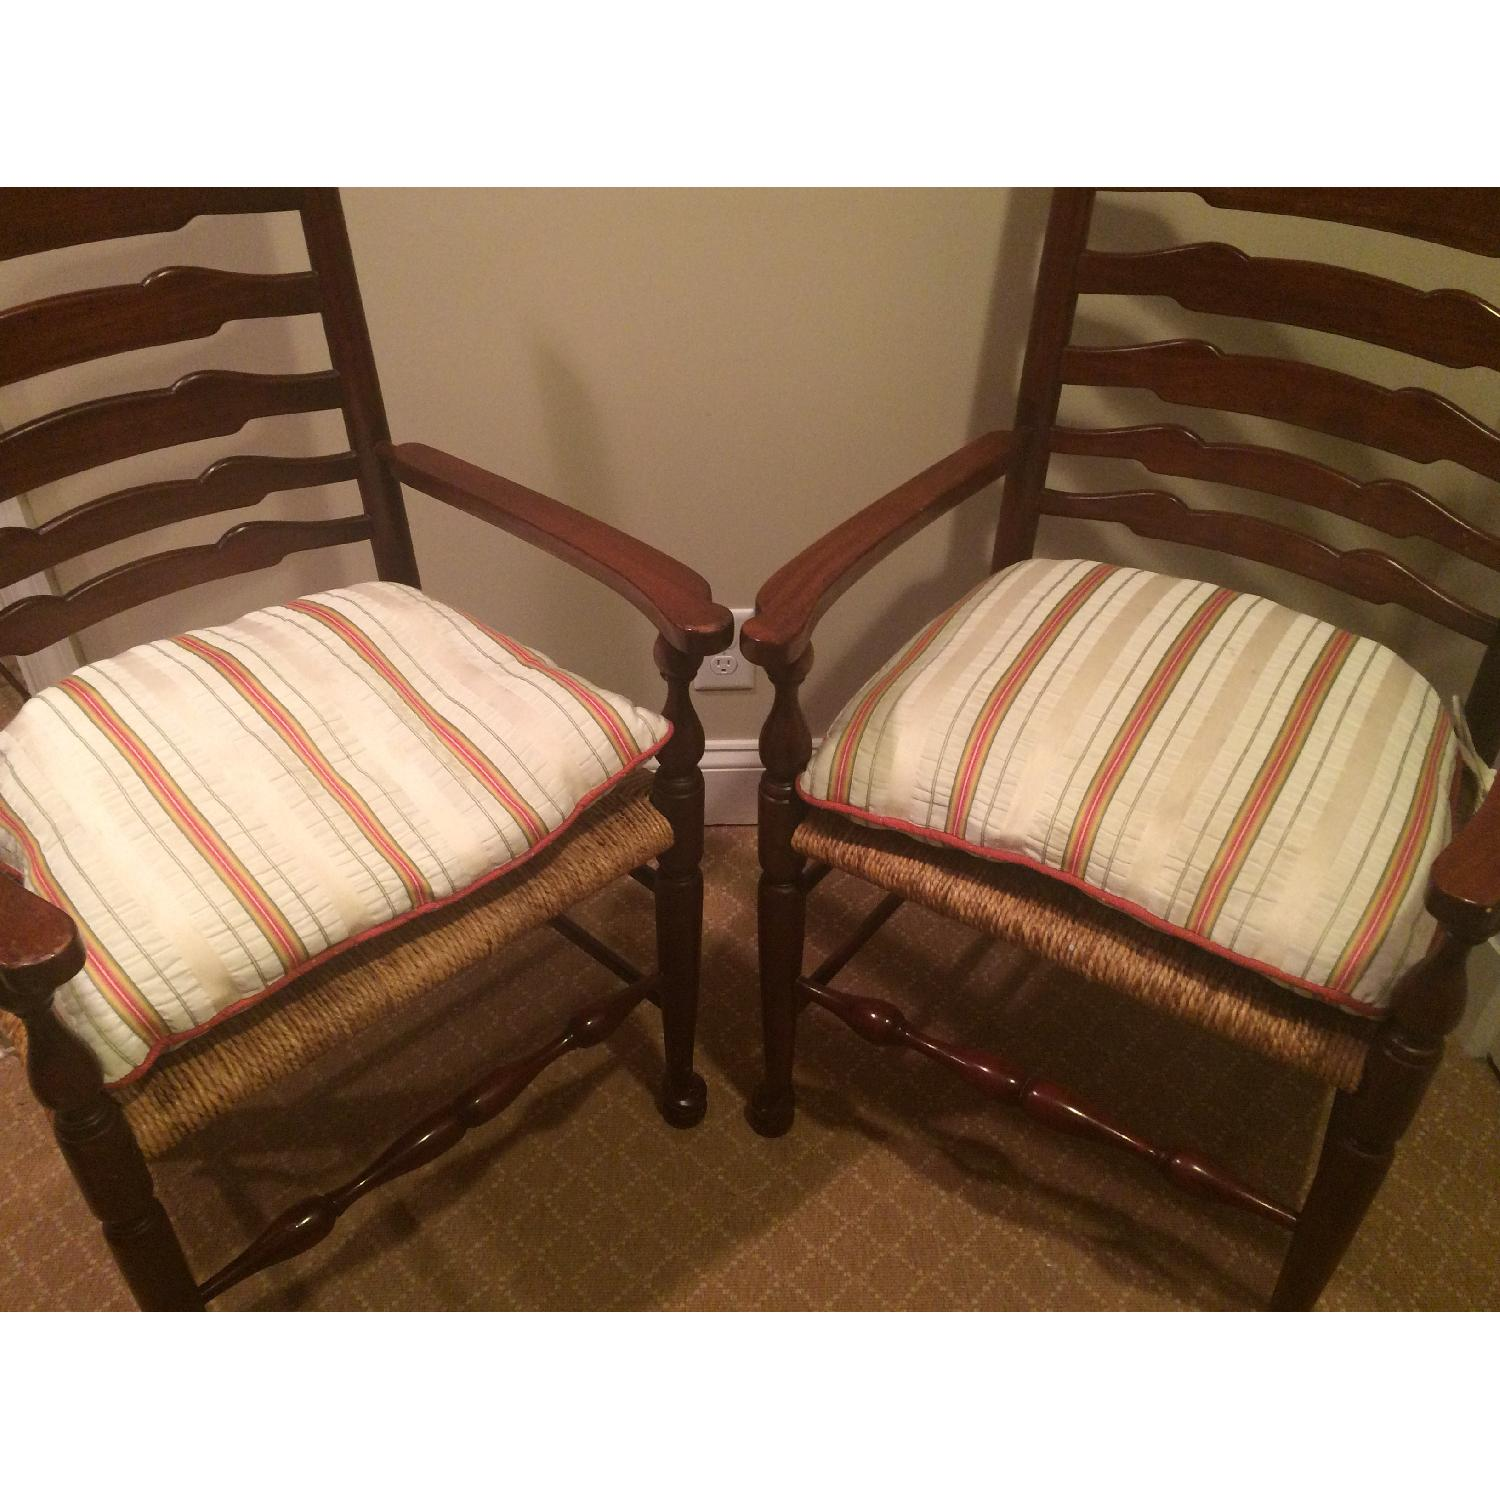 French Country Ladderback Armchairs - image-4